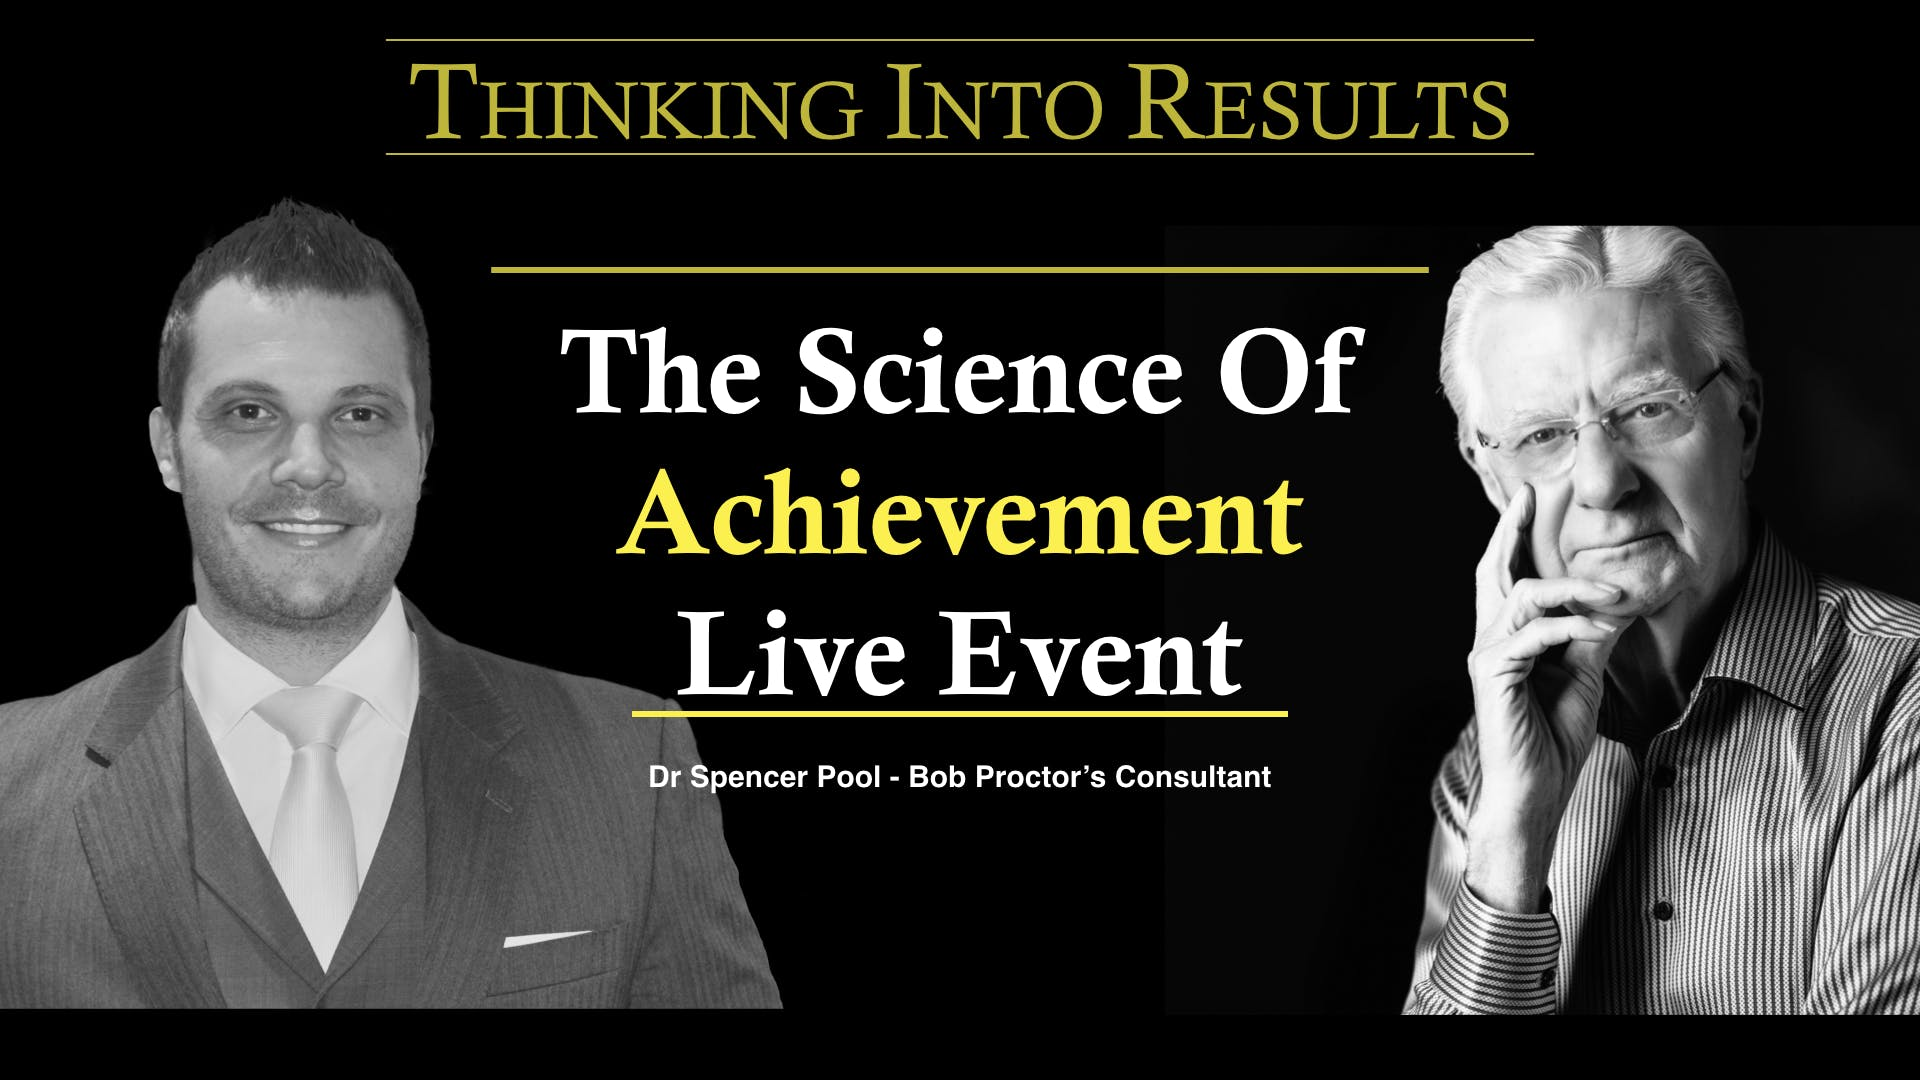 Bob Proctor Seminar with Dr Spencer Pool - Thinking Into Results